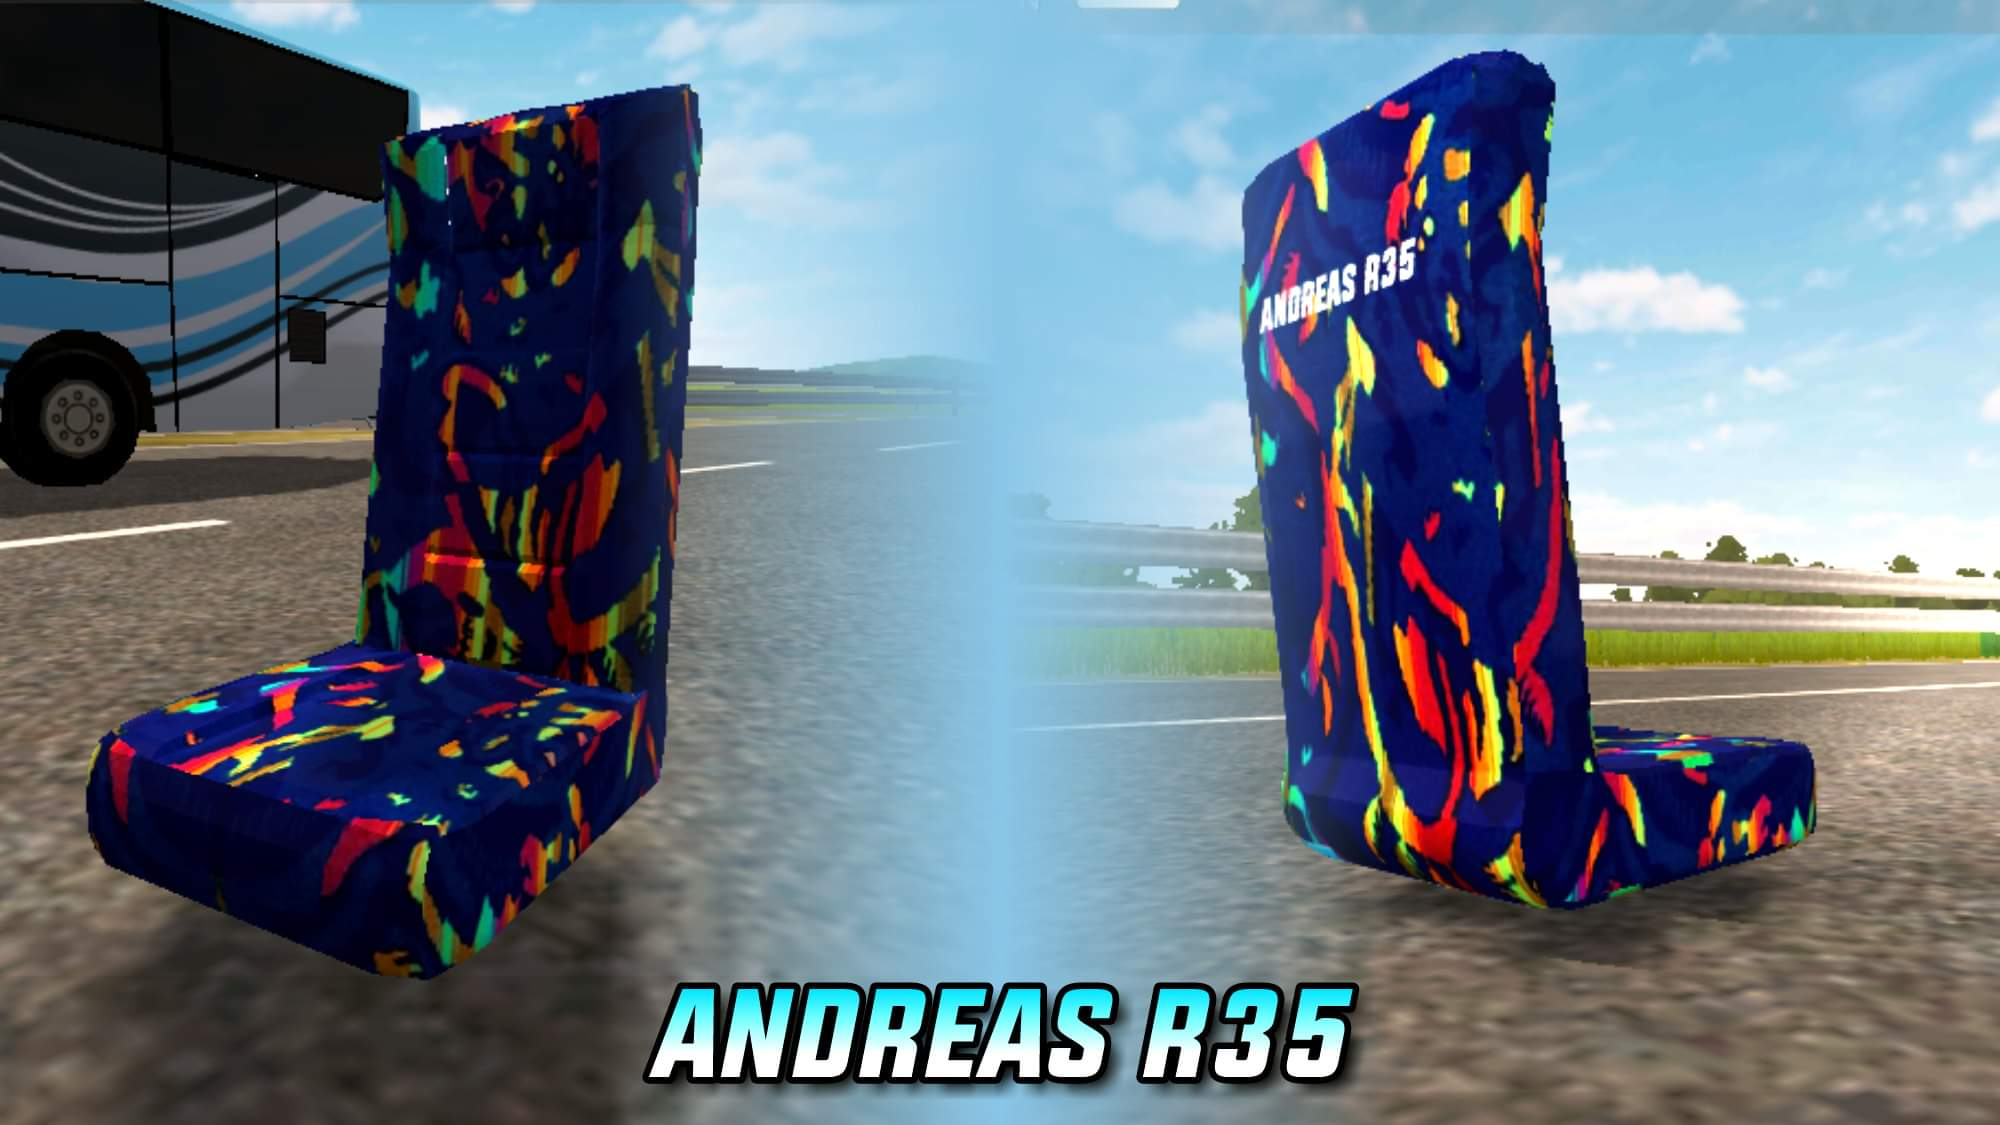 Download Andreas R35 Seat Mod for Bus Simulator Indonesia, , Bus Mod, Bus Simulator Indonesia Mod, BUSSID mod, Mod, Vehicle Mod